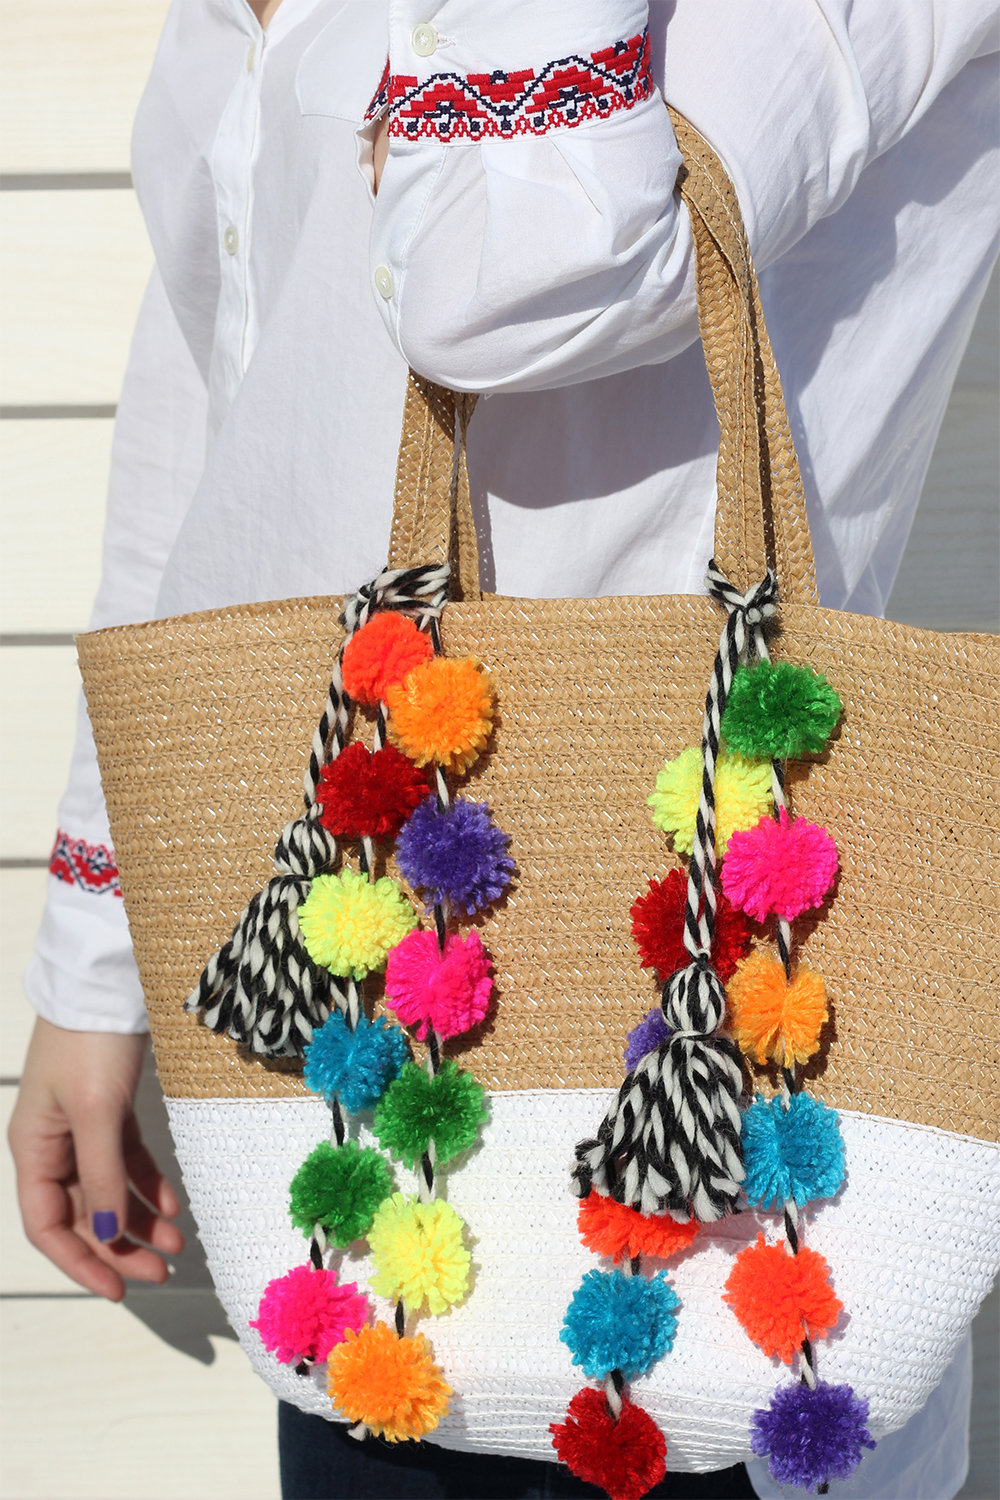 diy-pom-pom-bag-14 copy